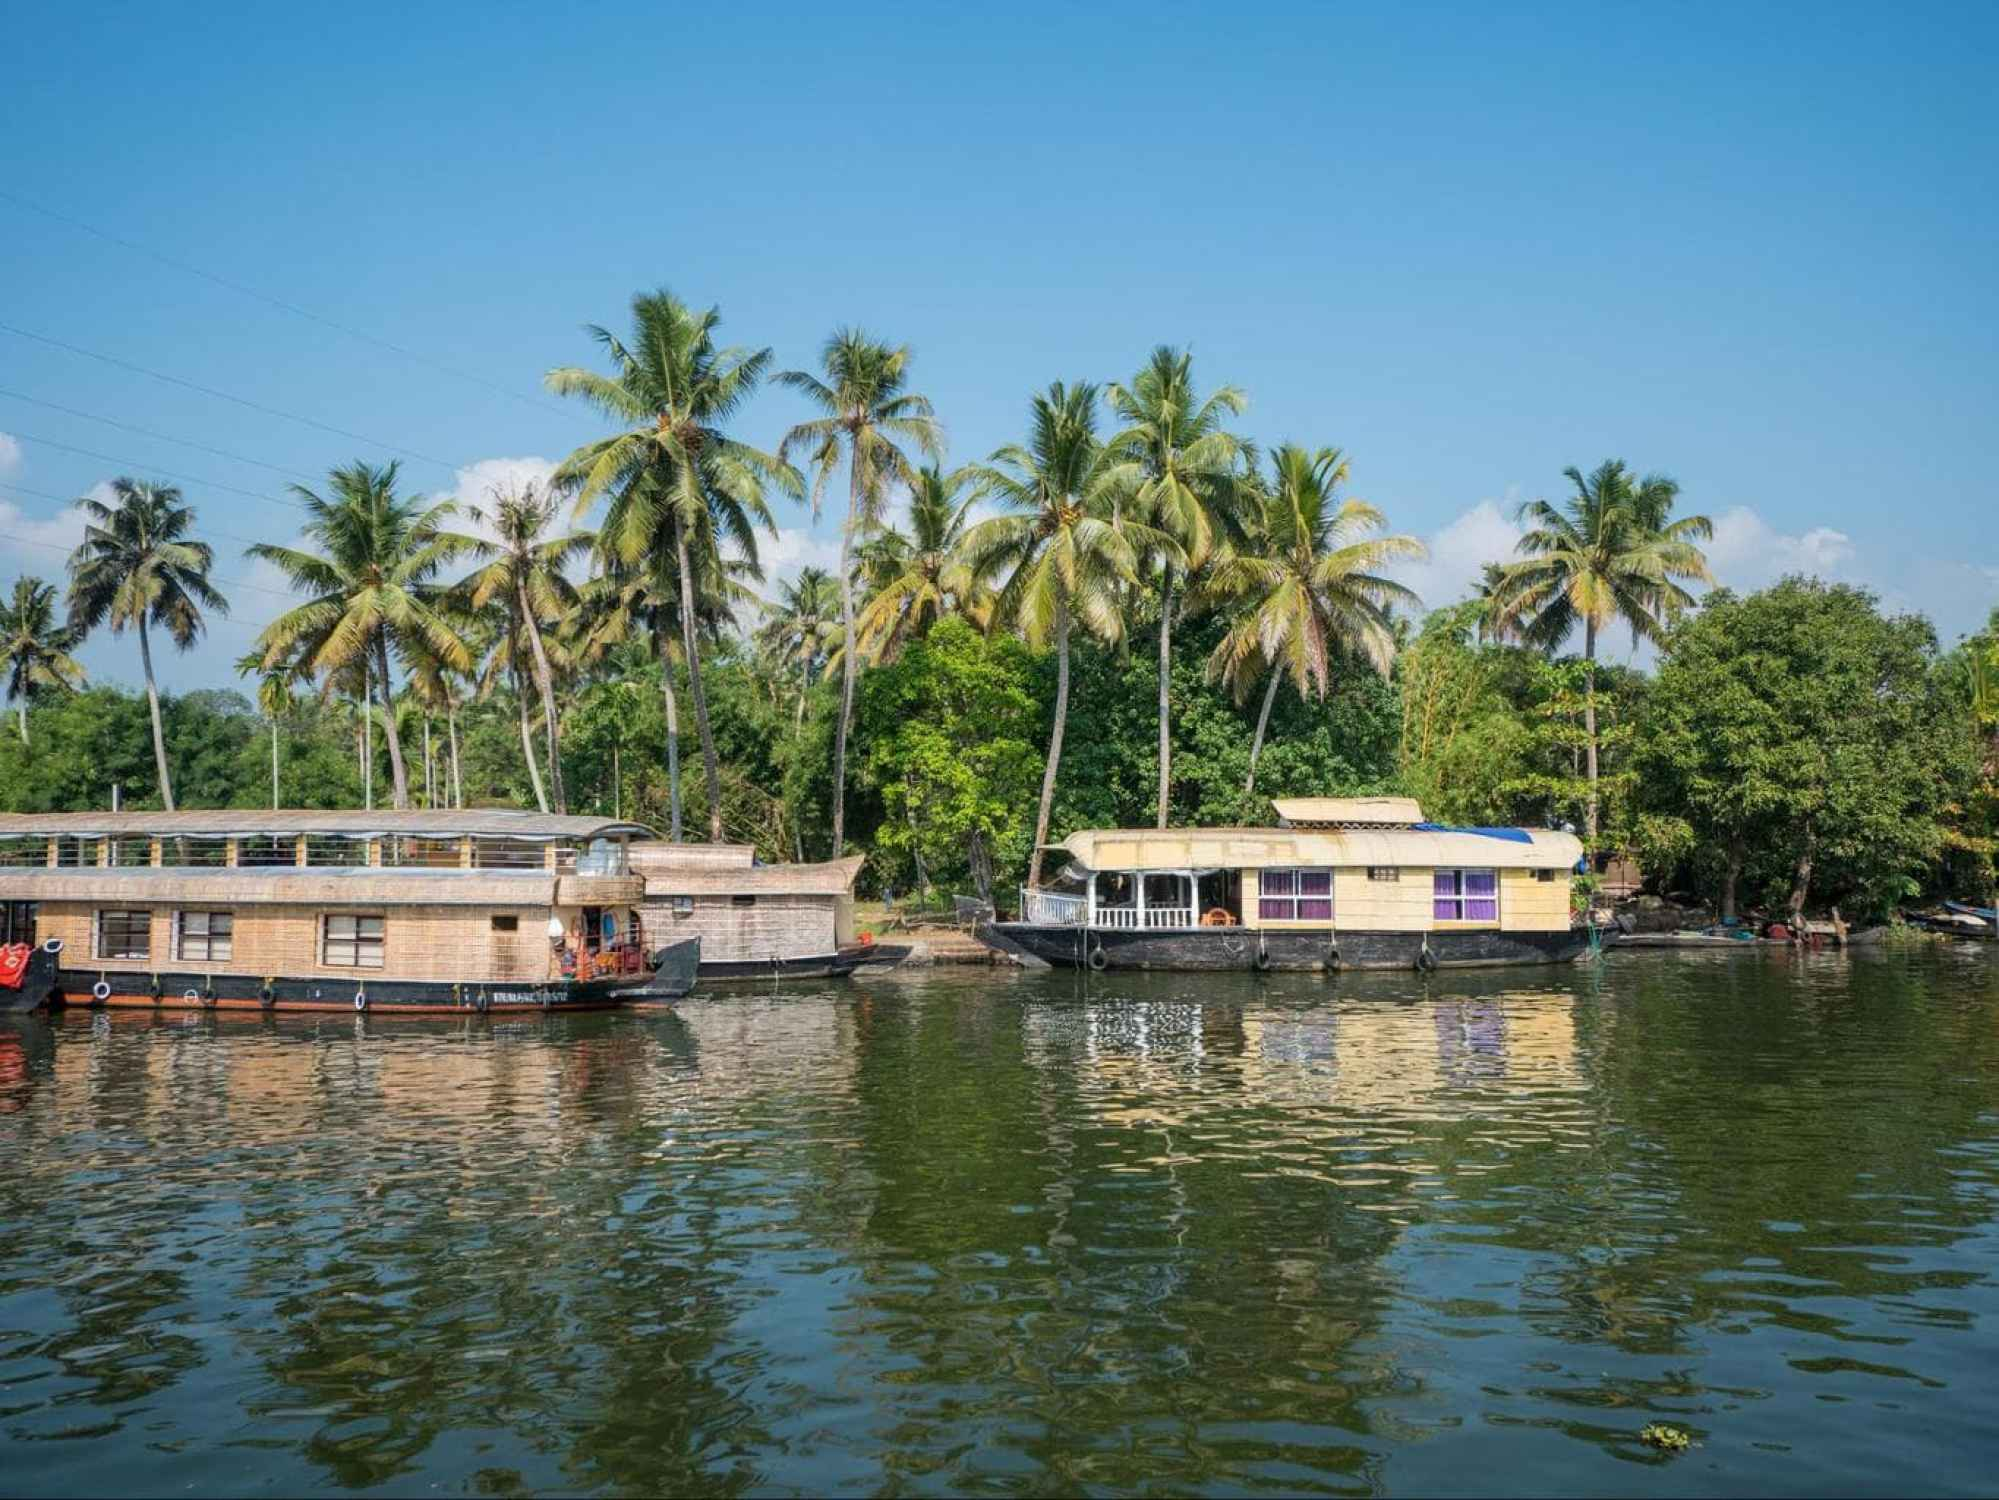 The backwaters of Kerala in India